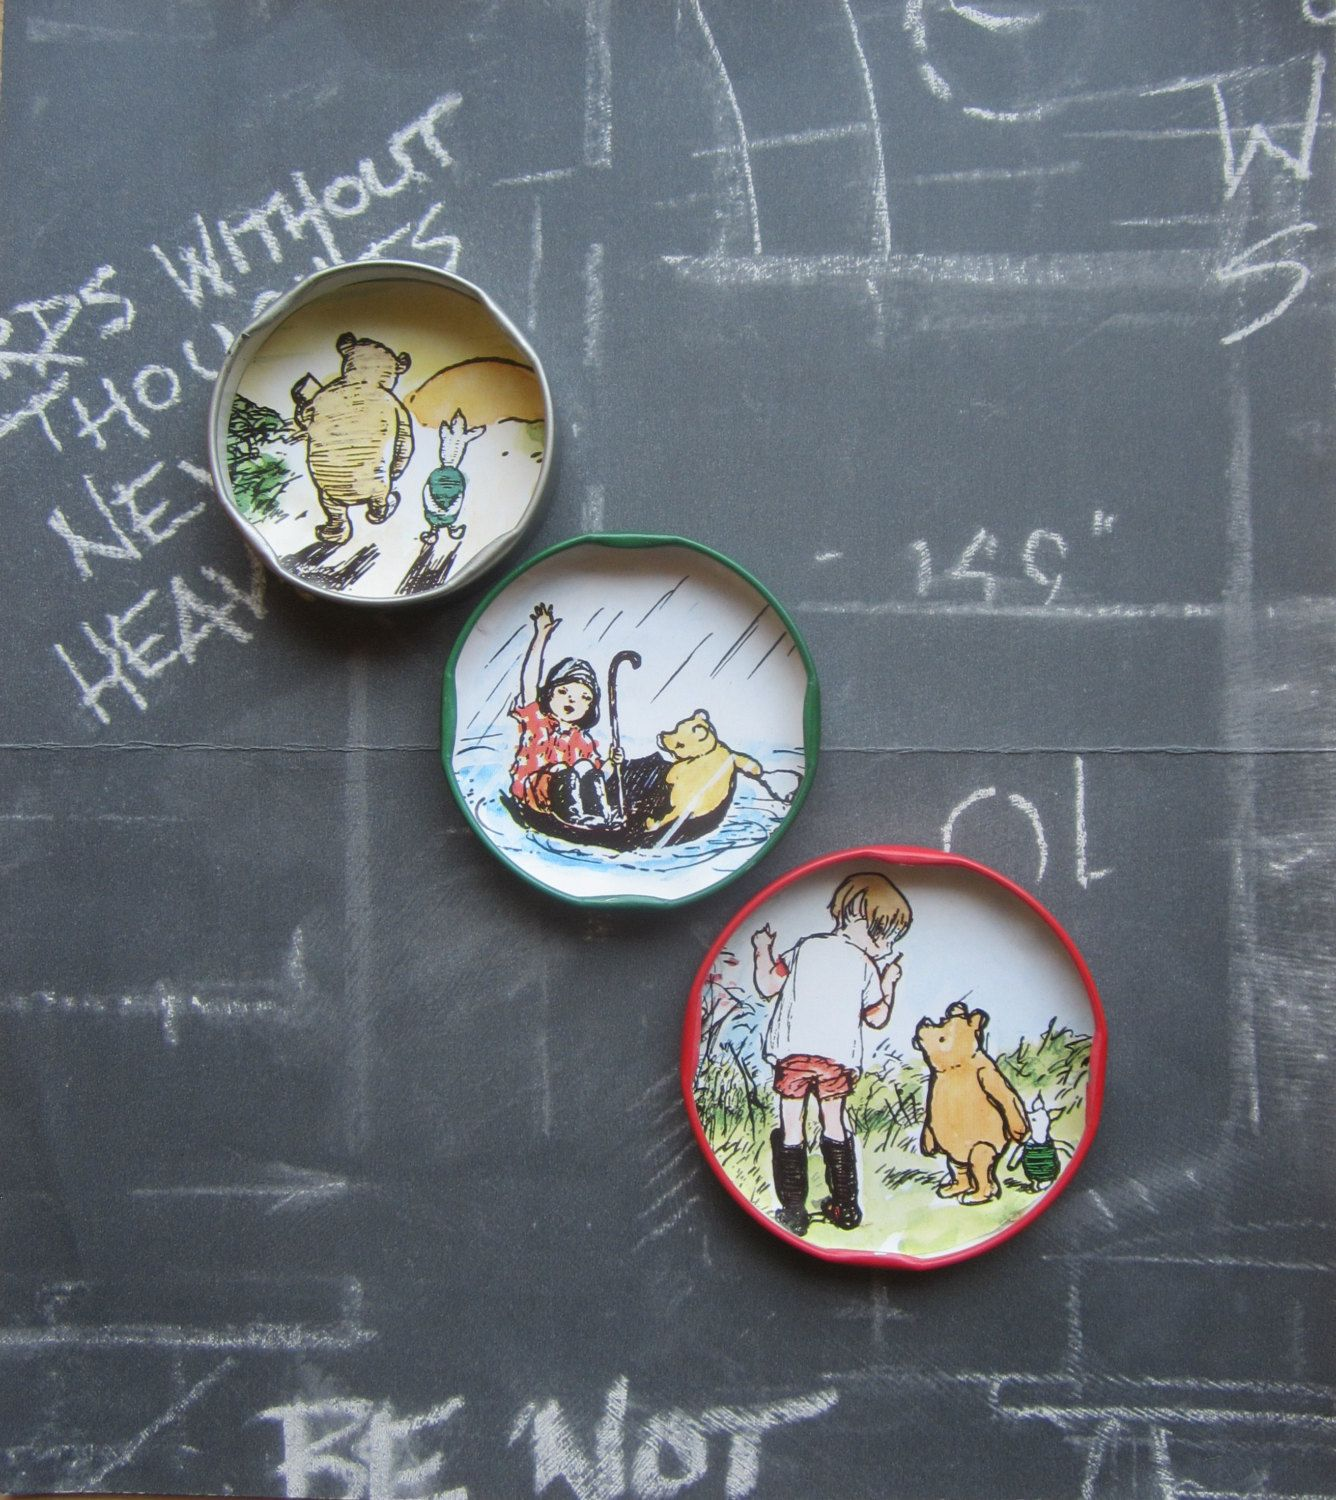 lovely Winnie The Pooh Kitchen Decor #4: Winnie the pooh fridge magnets upcycled jar lids small gift refrigerator  magnets funny fridge decor cute kitsch kitchen retro unique gifts